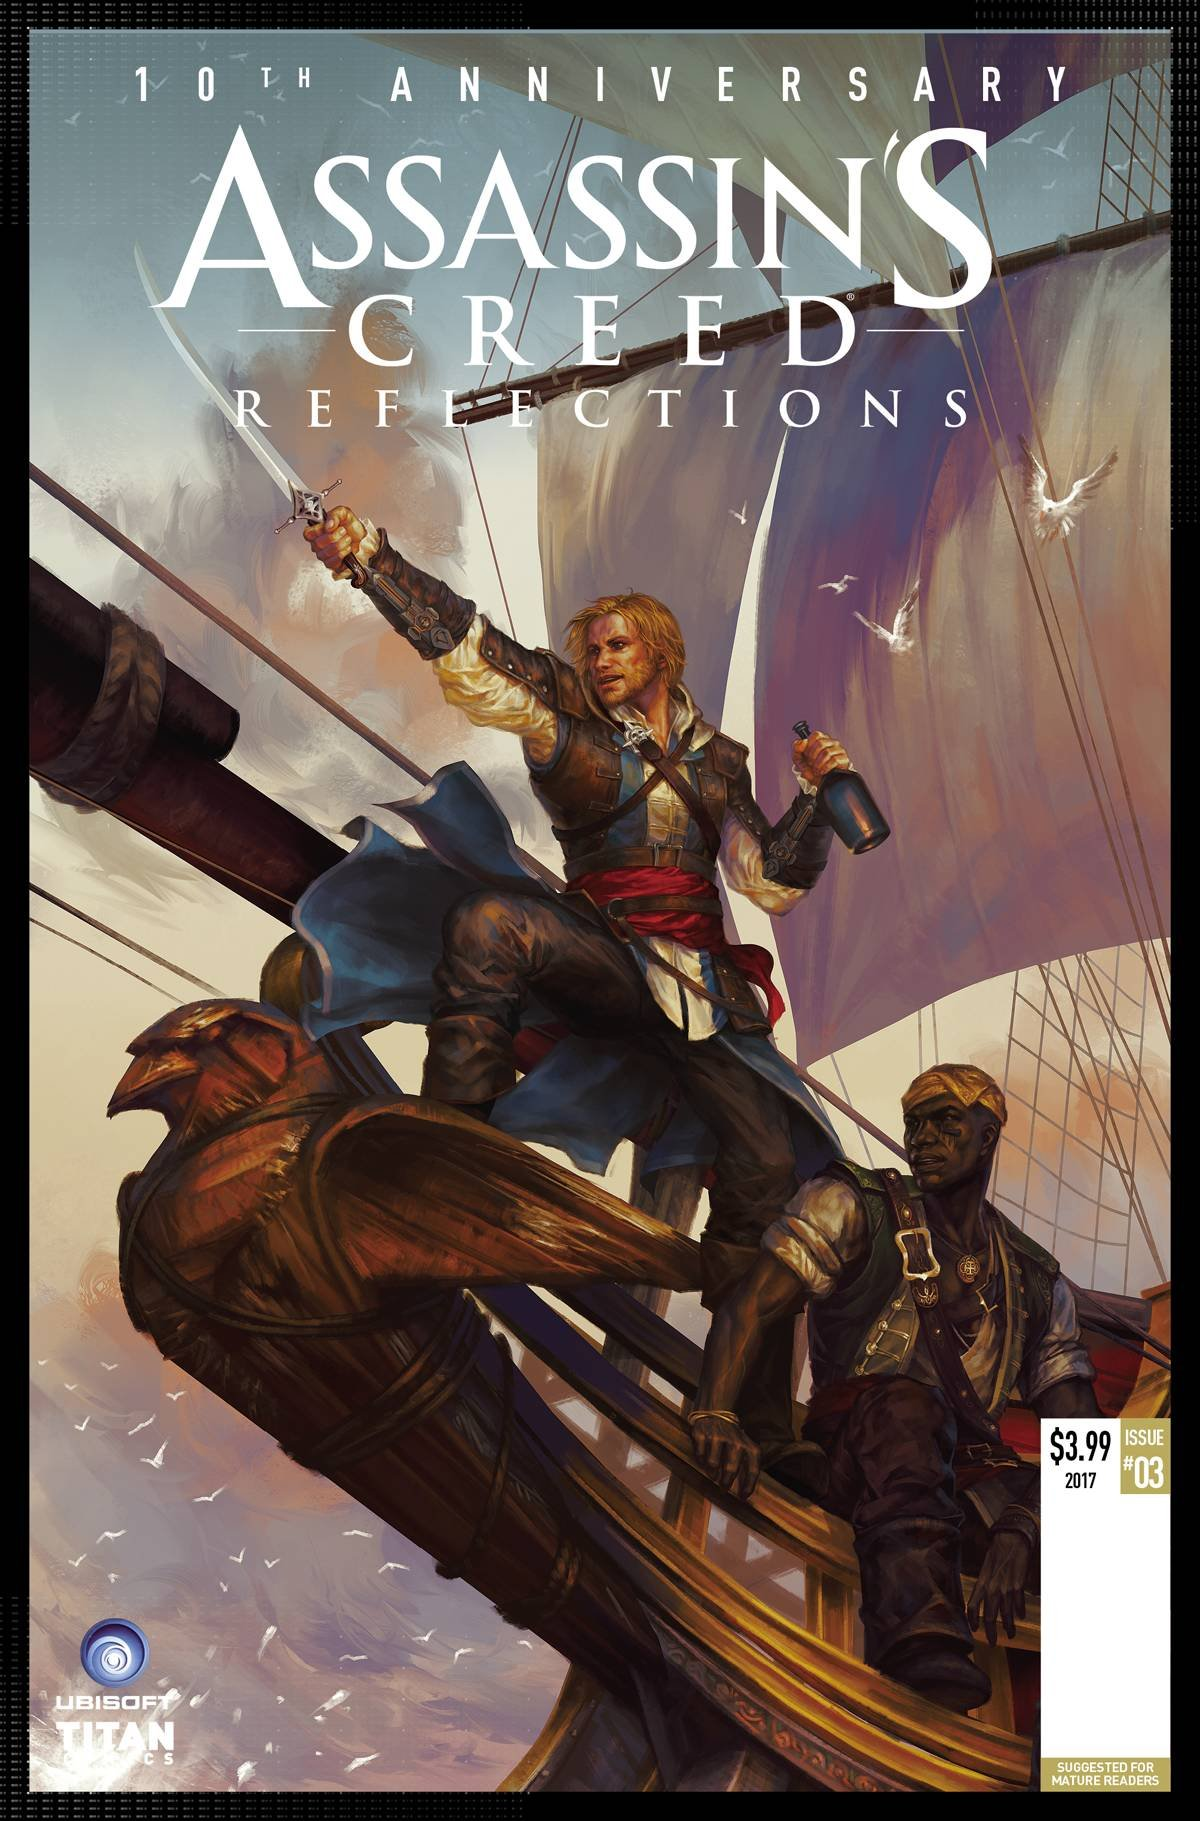 Download ASSASSINS CREED REFLECTIONS #3 (OF 4) CVR A SUNSETAGAIN (MR) ebook